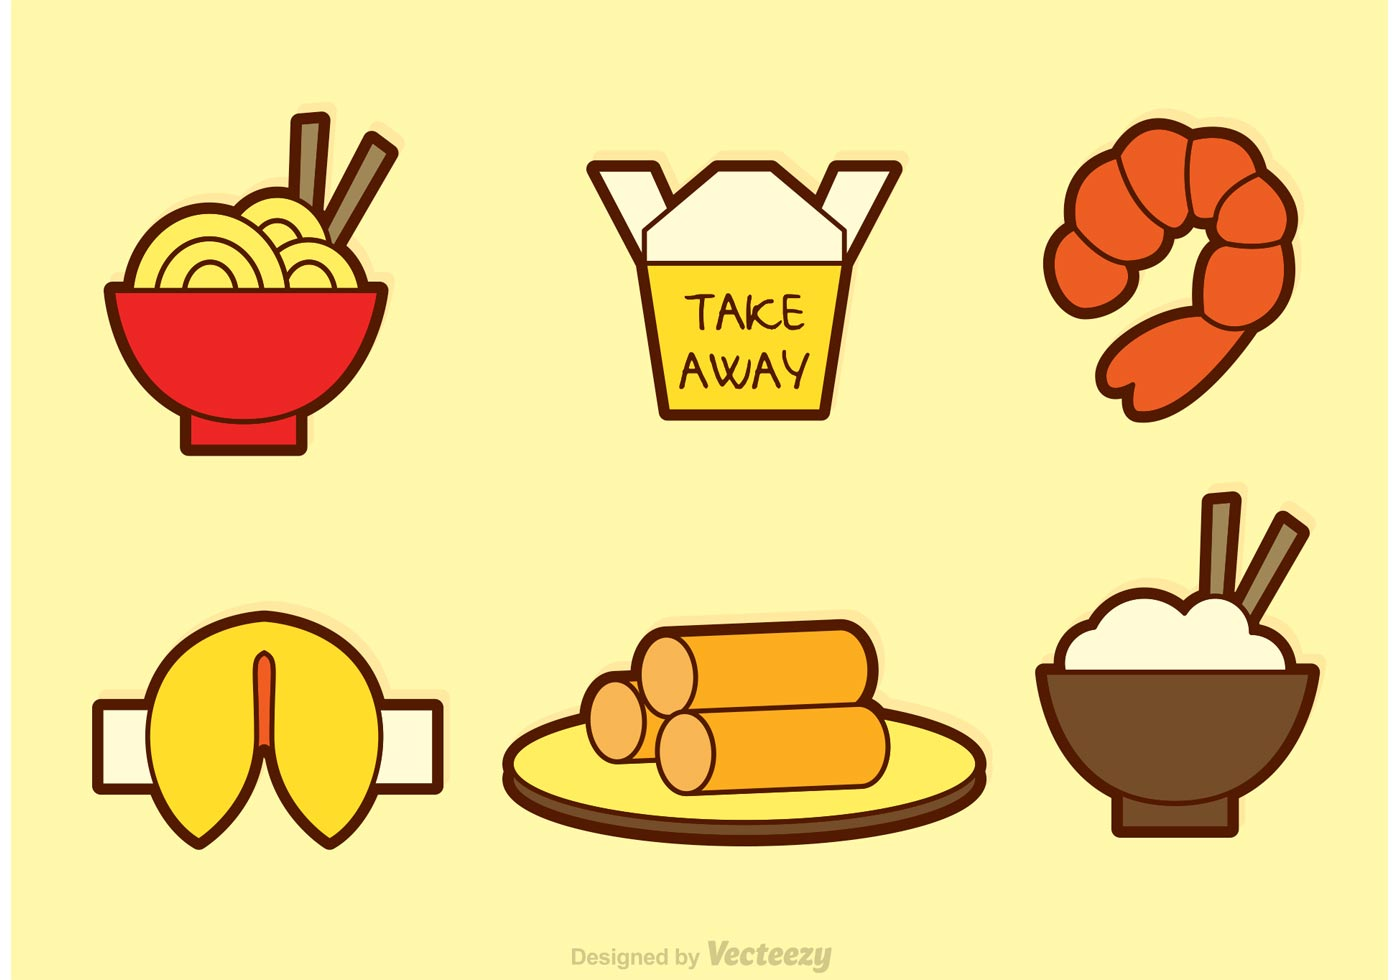 Chinese Food Vector Icons - Download Free Vector Art, Stock Graphics ...